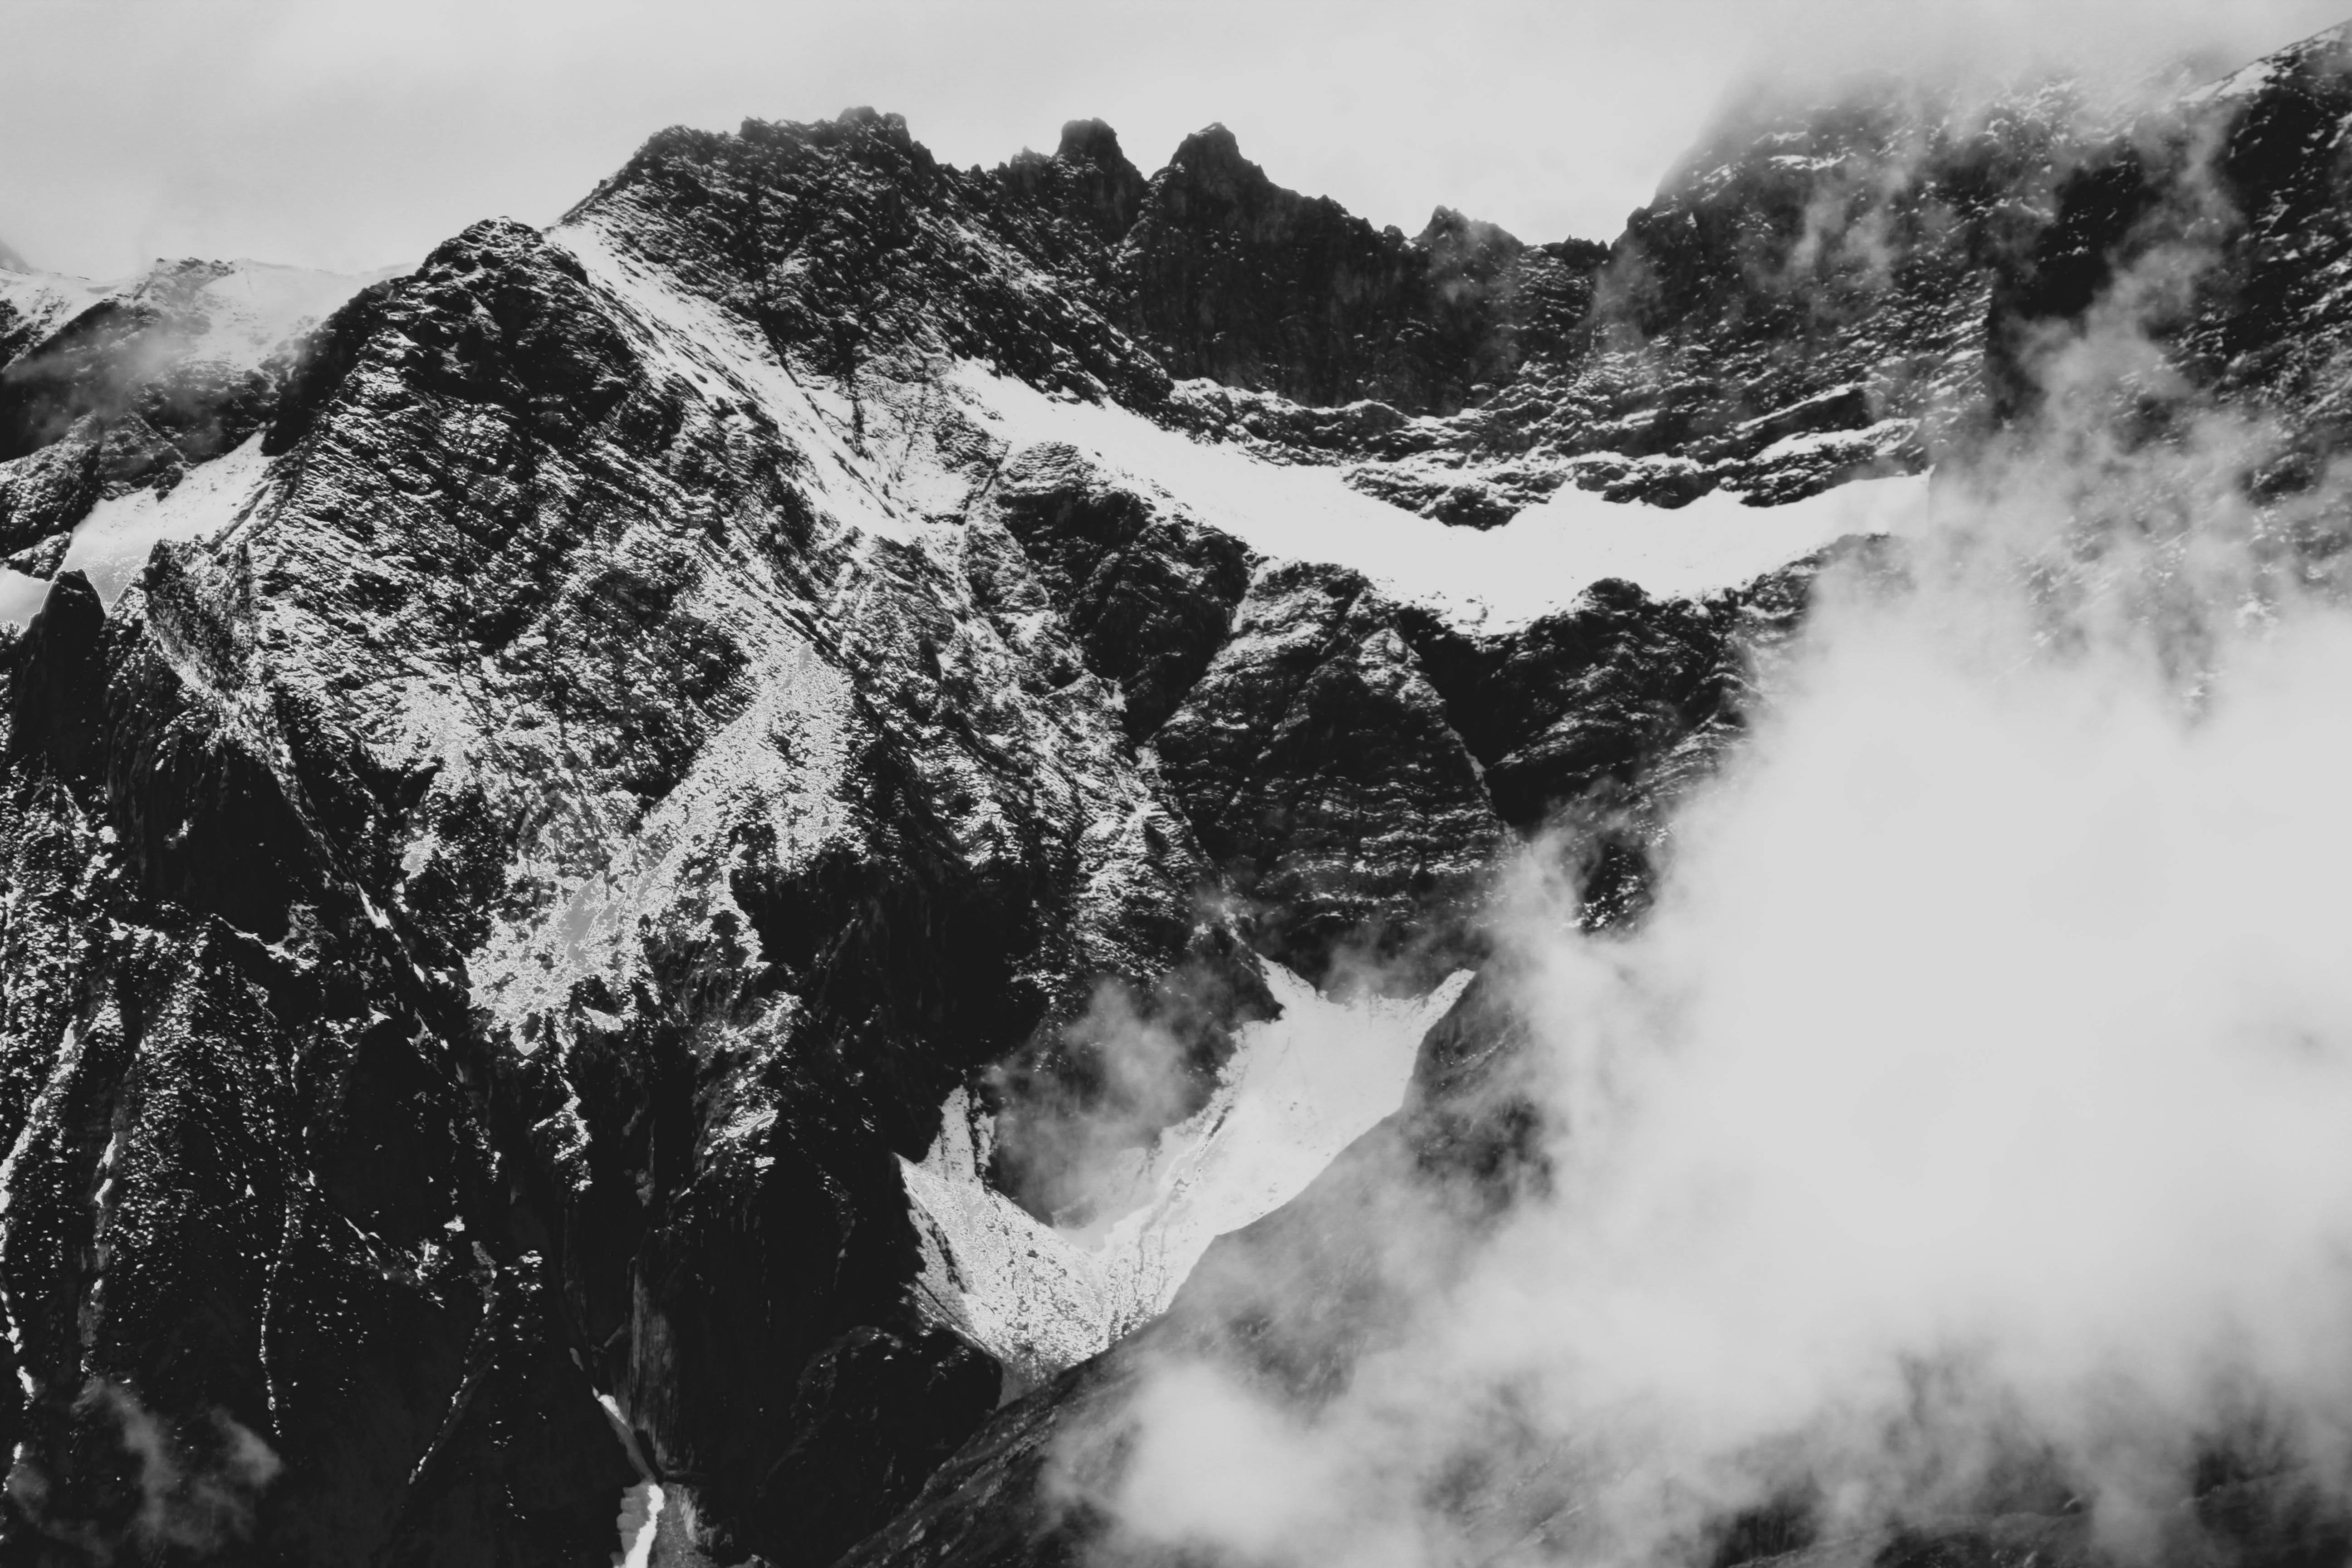 grayscale photography of glacier mountain with fogs